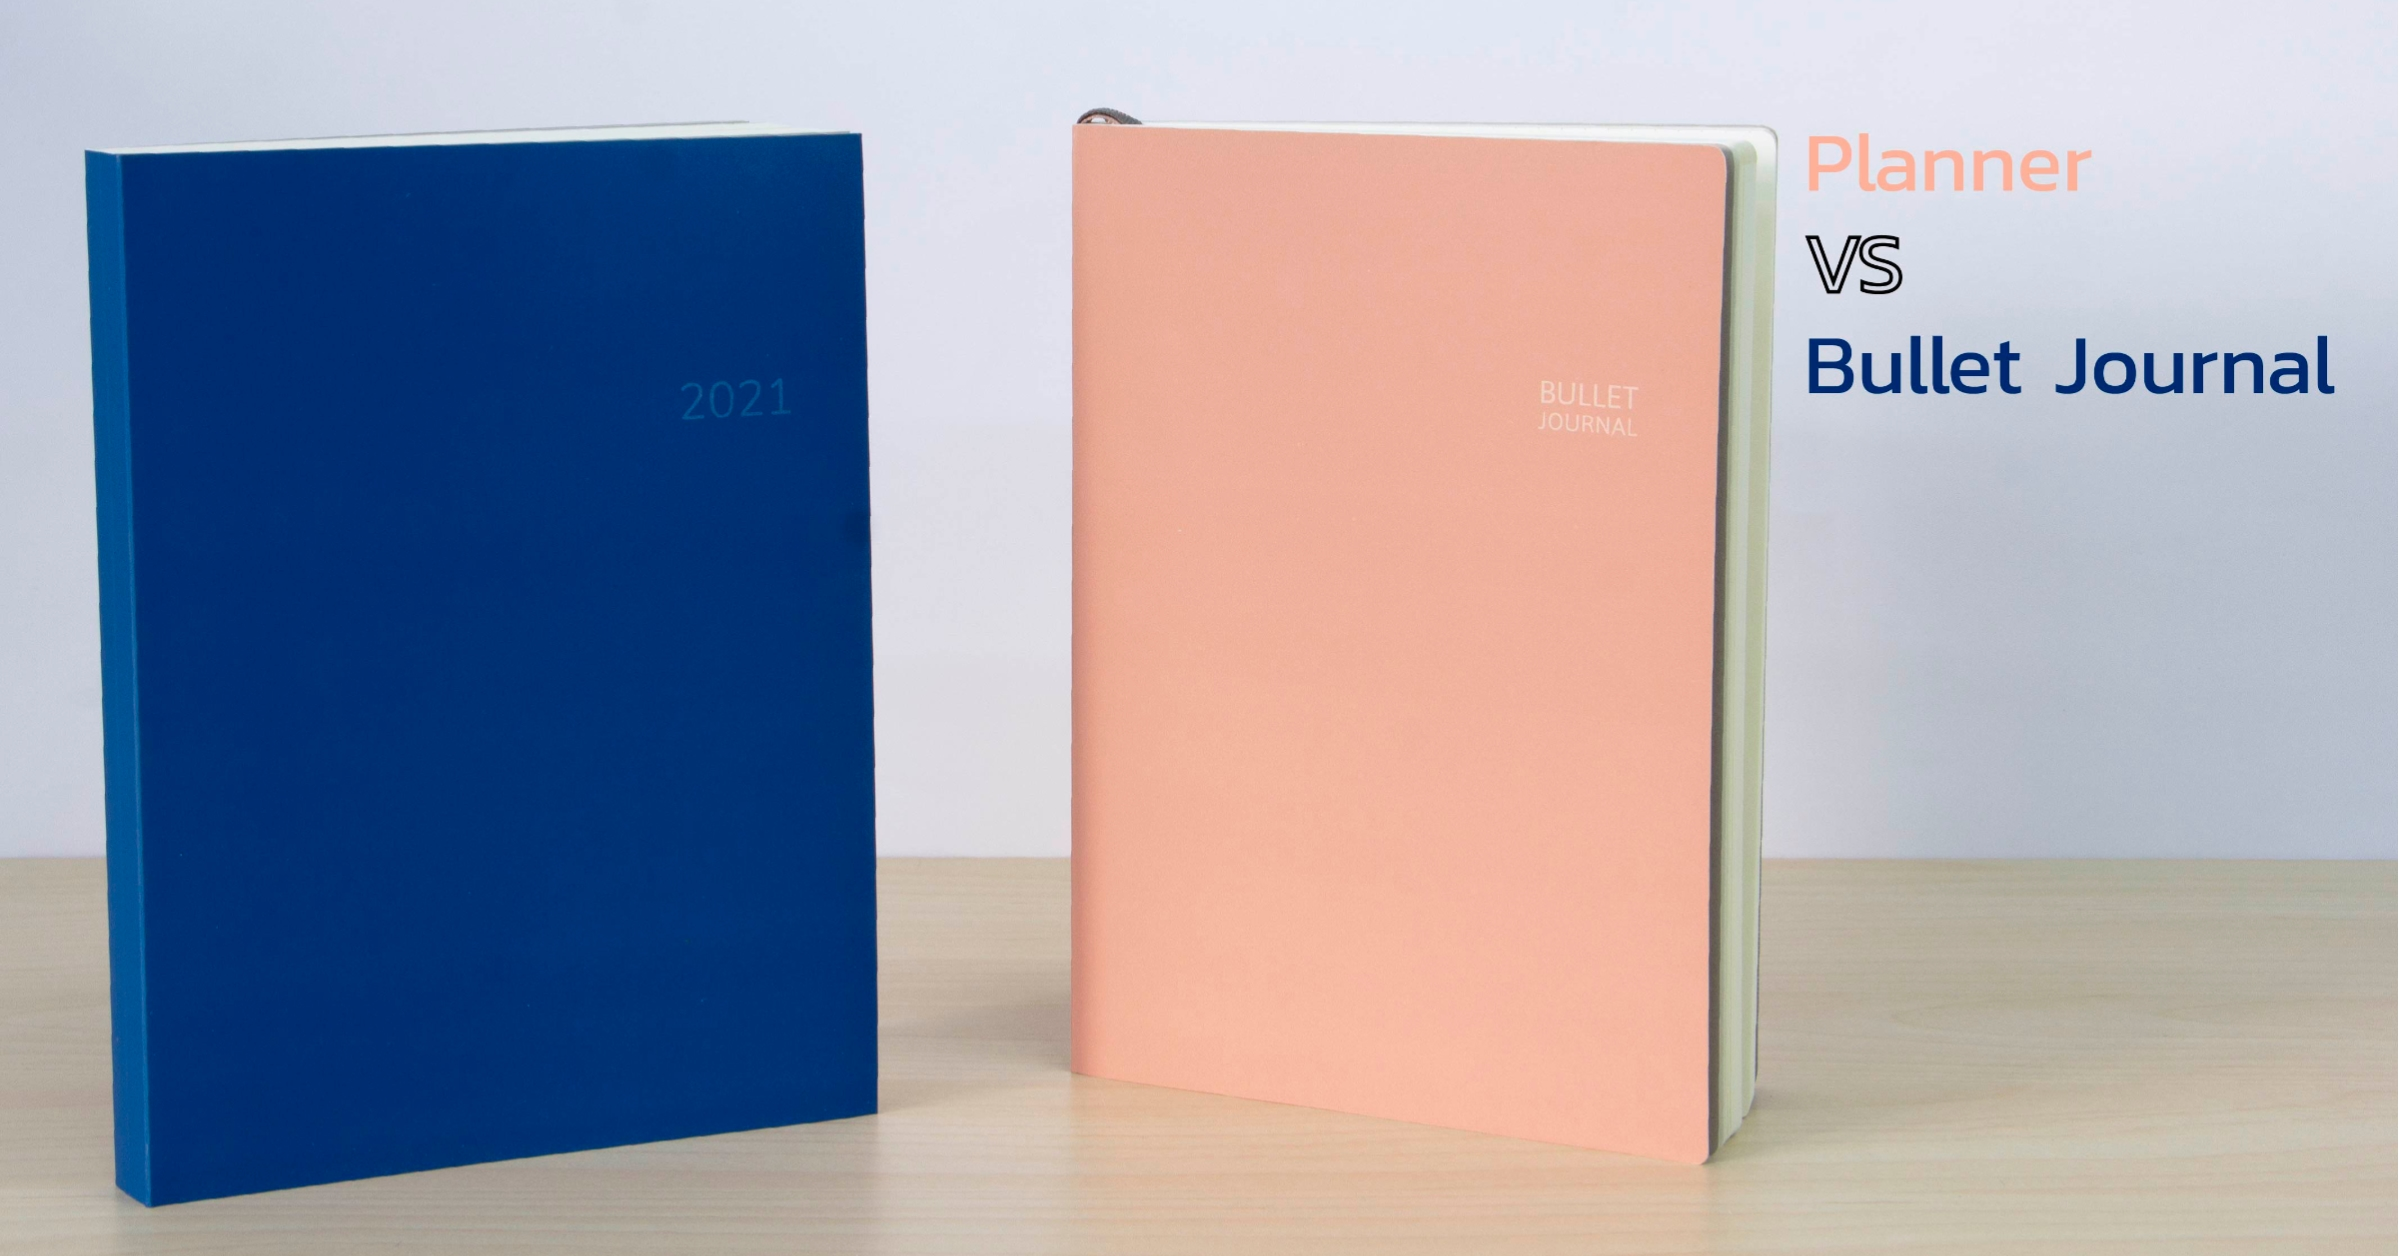 Planner VS Bullet Journal: Which one is right for you?